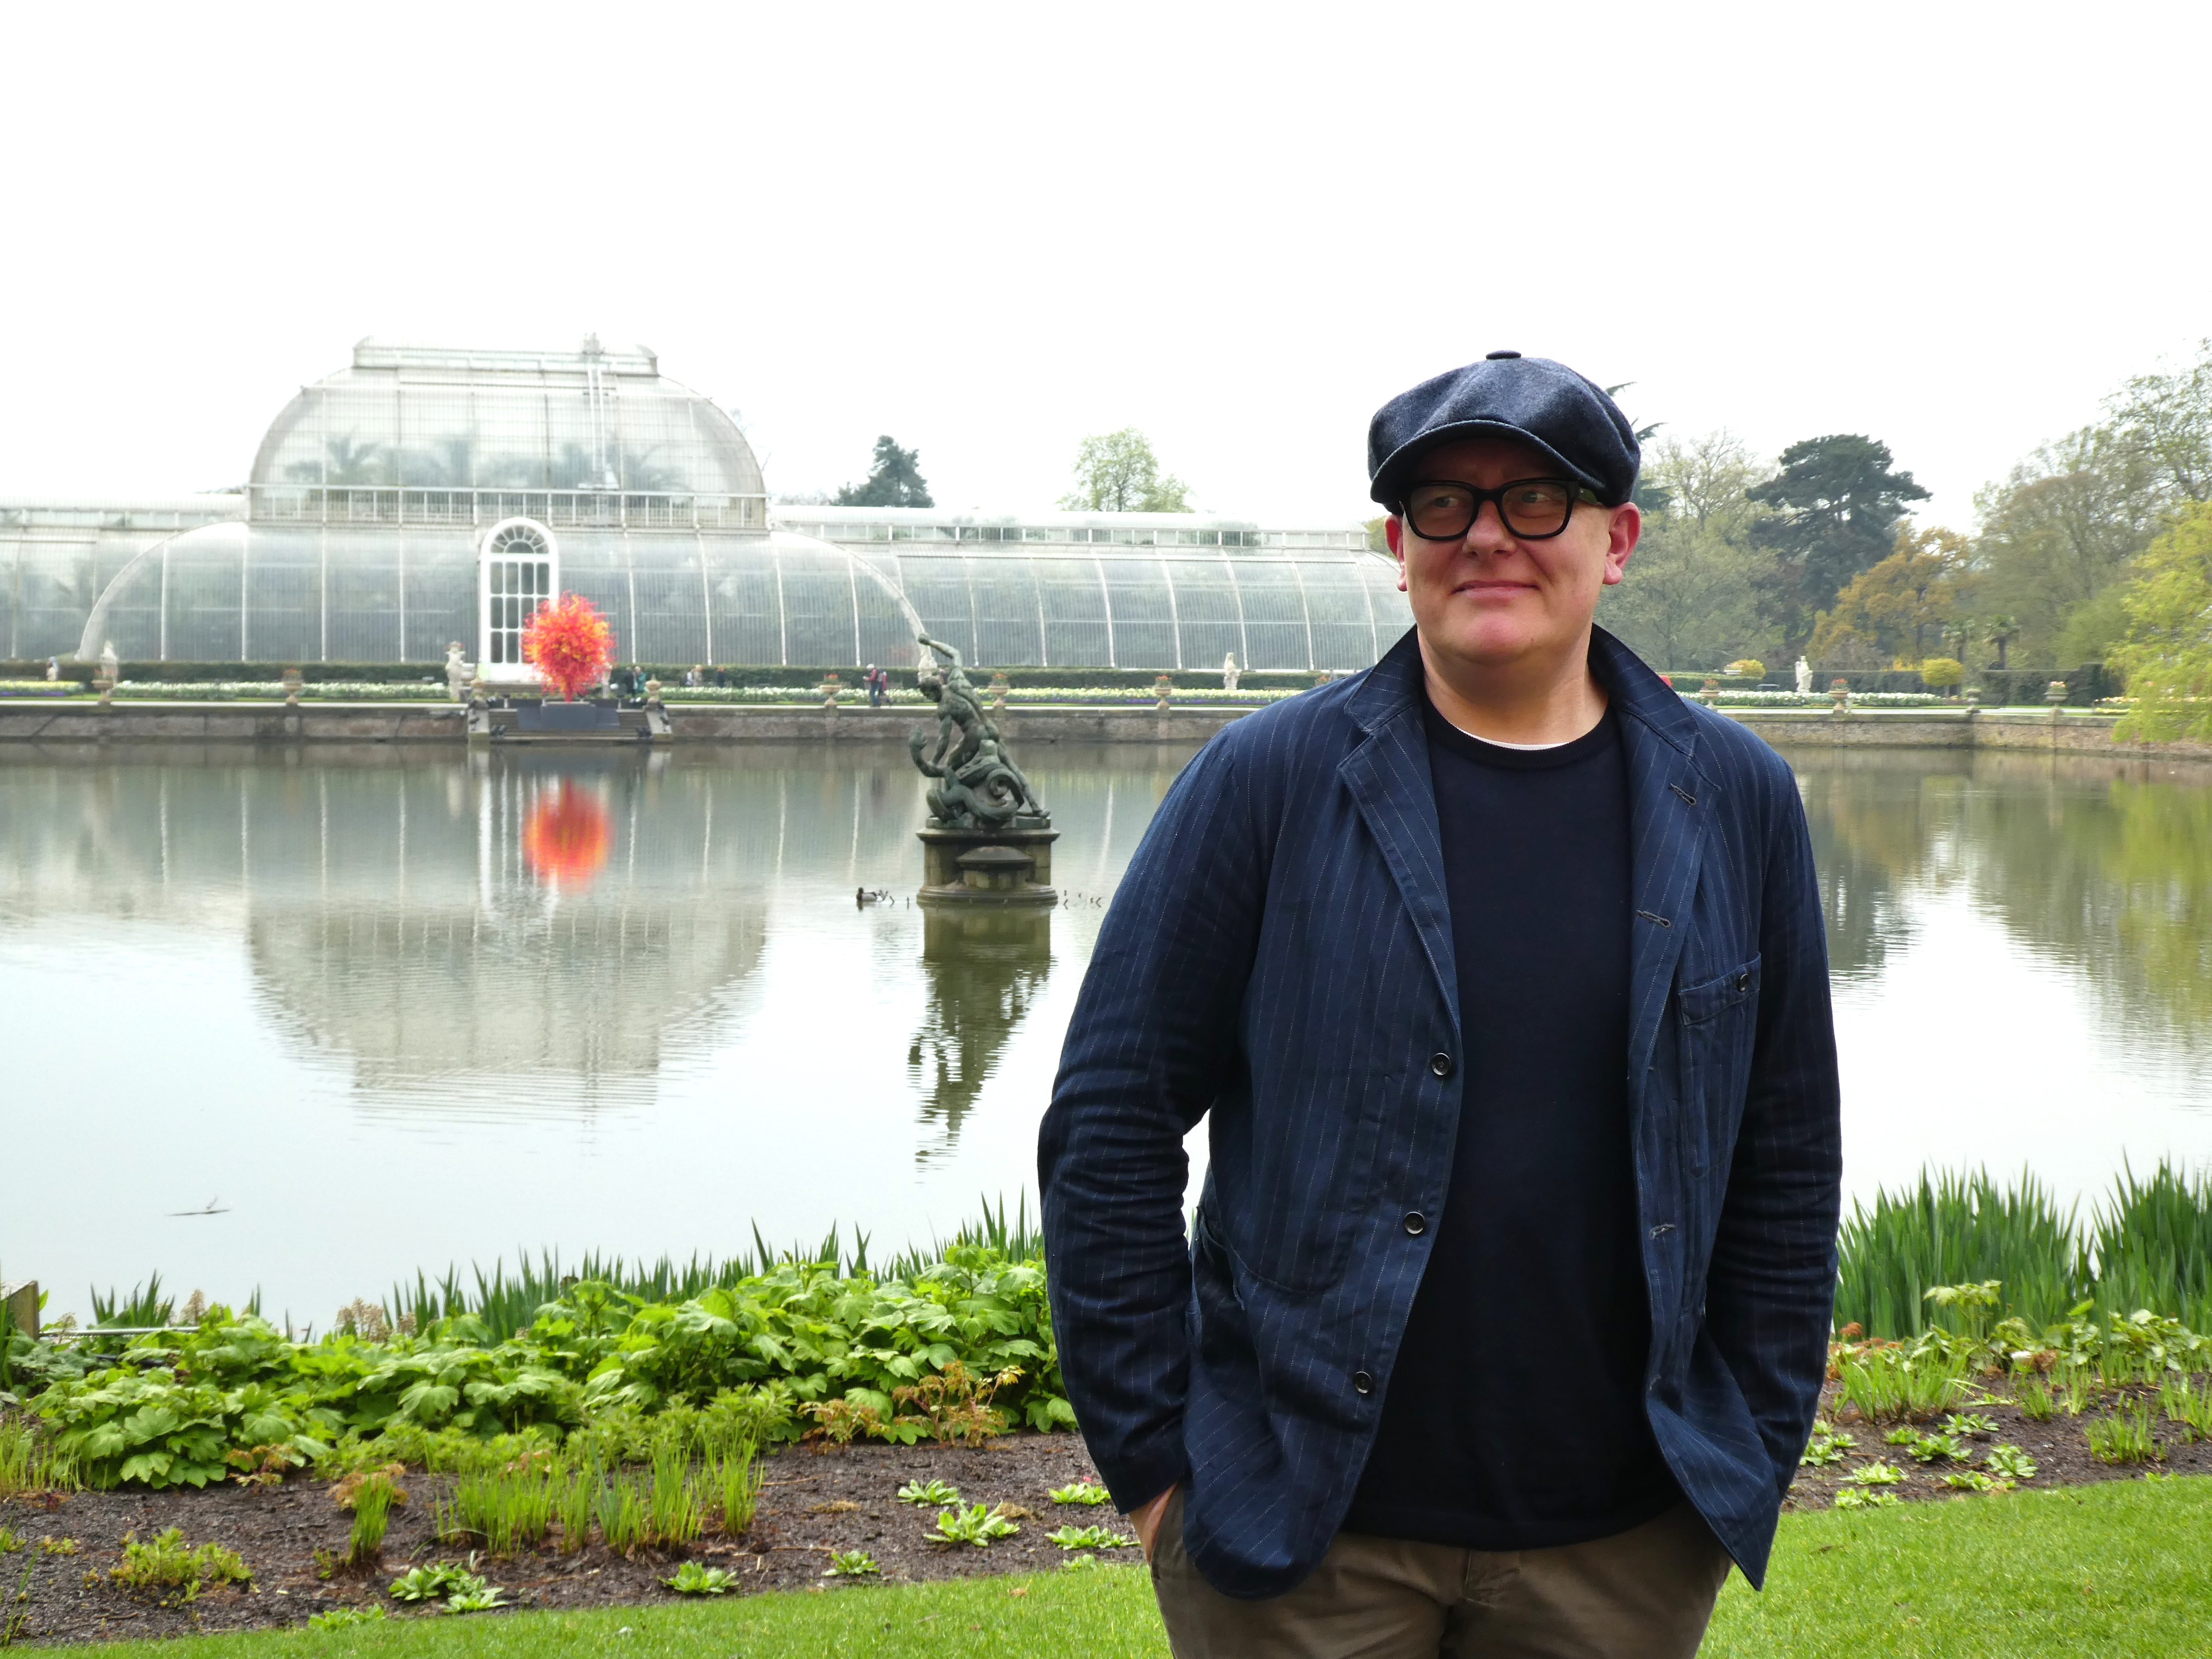 Above: Lagom's founder and creative director Kelly Hyatt in front of the Palm House at the Royal Botanic Gardens, Kew.